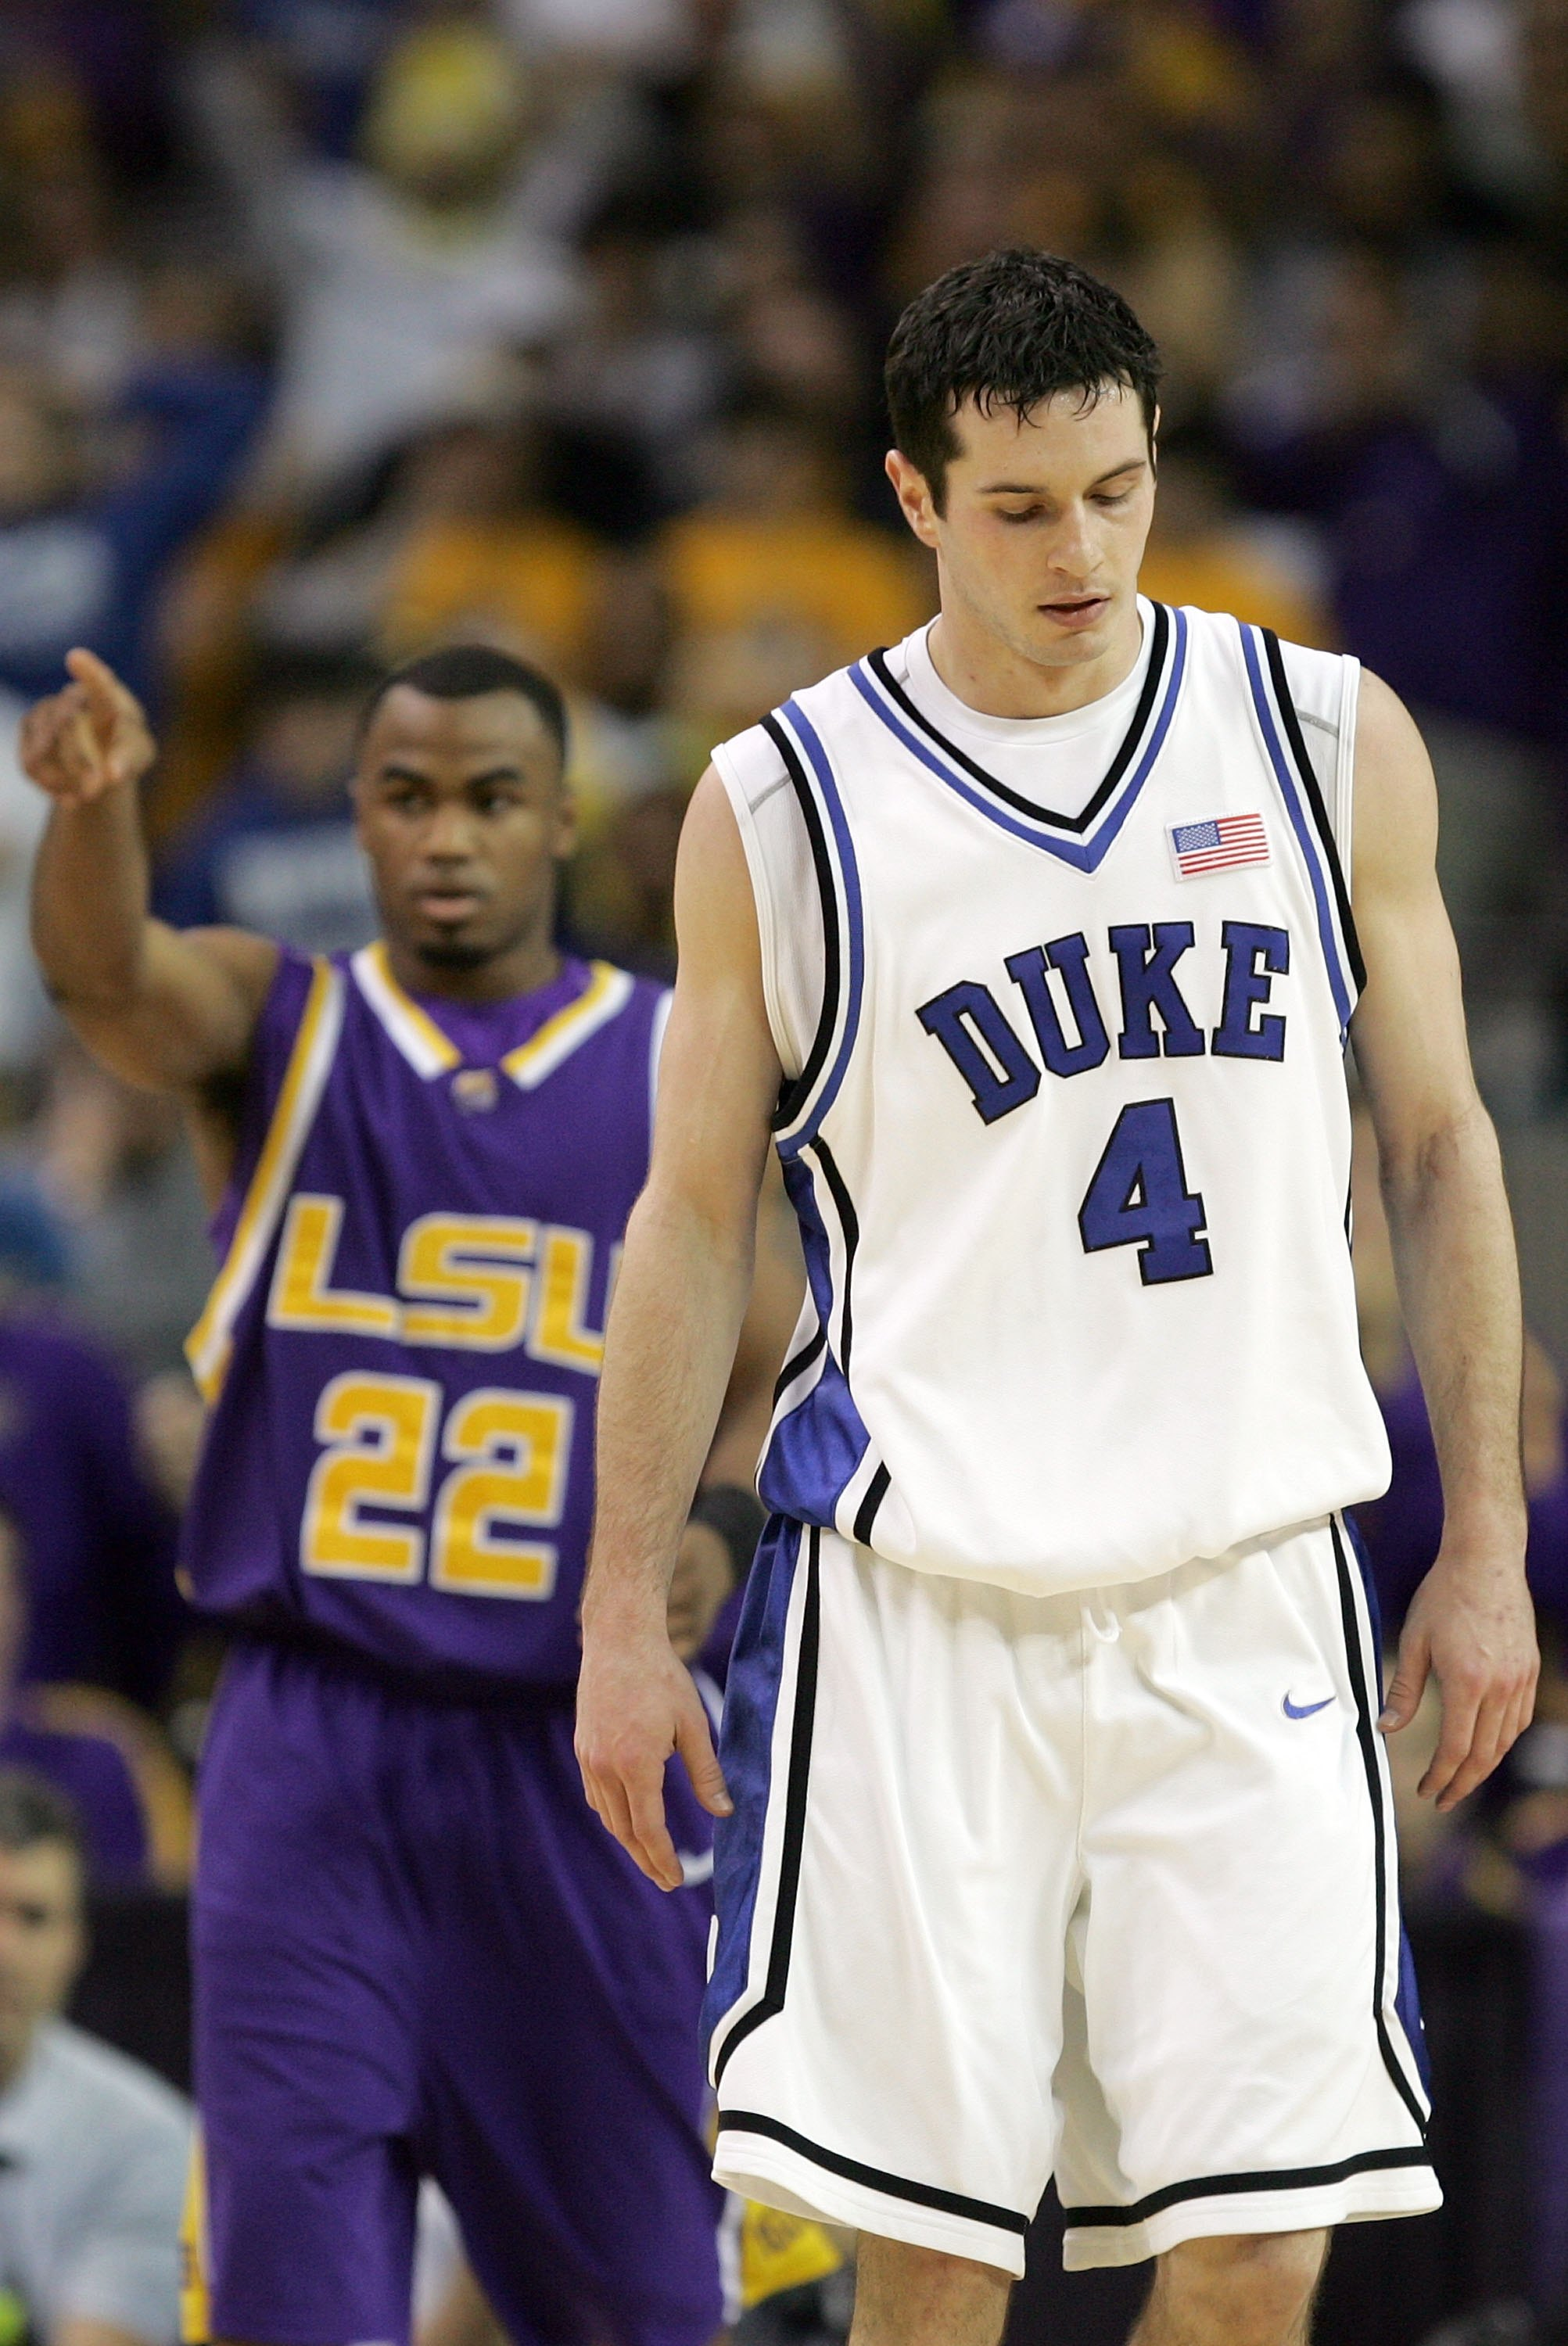 ATLANTA - MARCH 23:  J.J. Redick #4 of the Duke Blue Devils and Darrel Mitchell #22 of  the LSU Tigers walk down court during third round game of the 2006 NCAA Division I Men's Basketball Tournament Regional at the Georgia Dome on March 23, 2006 in Atlant